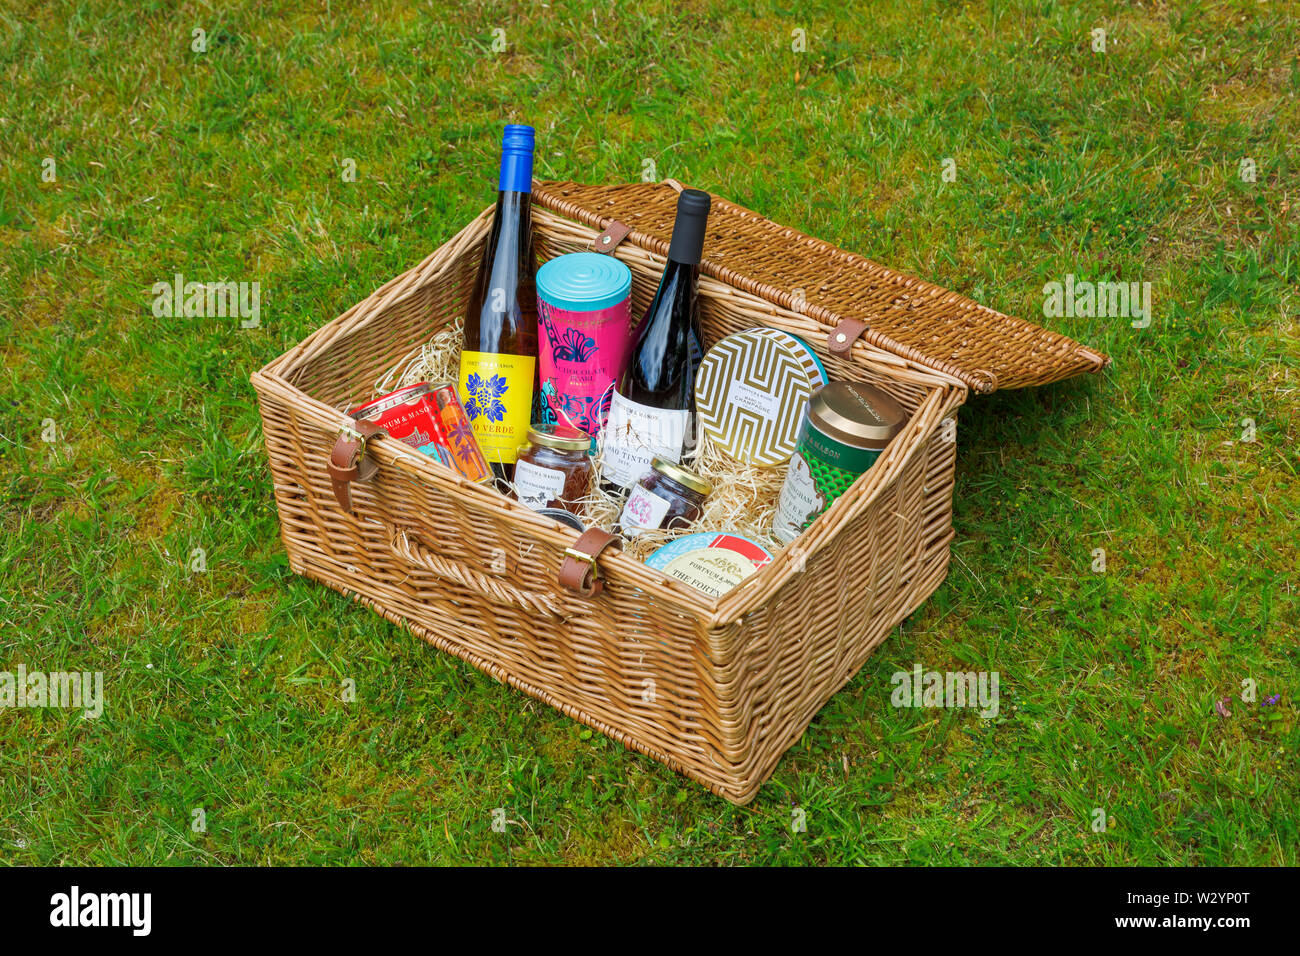 Luxurious lifestyle: Fortnum & Mason wicker picnic hamper (the Grosvenor Hamper) on grass with an open top displaying contents - Stock Image